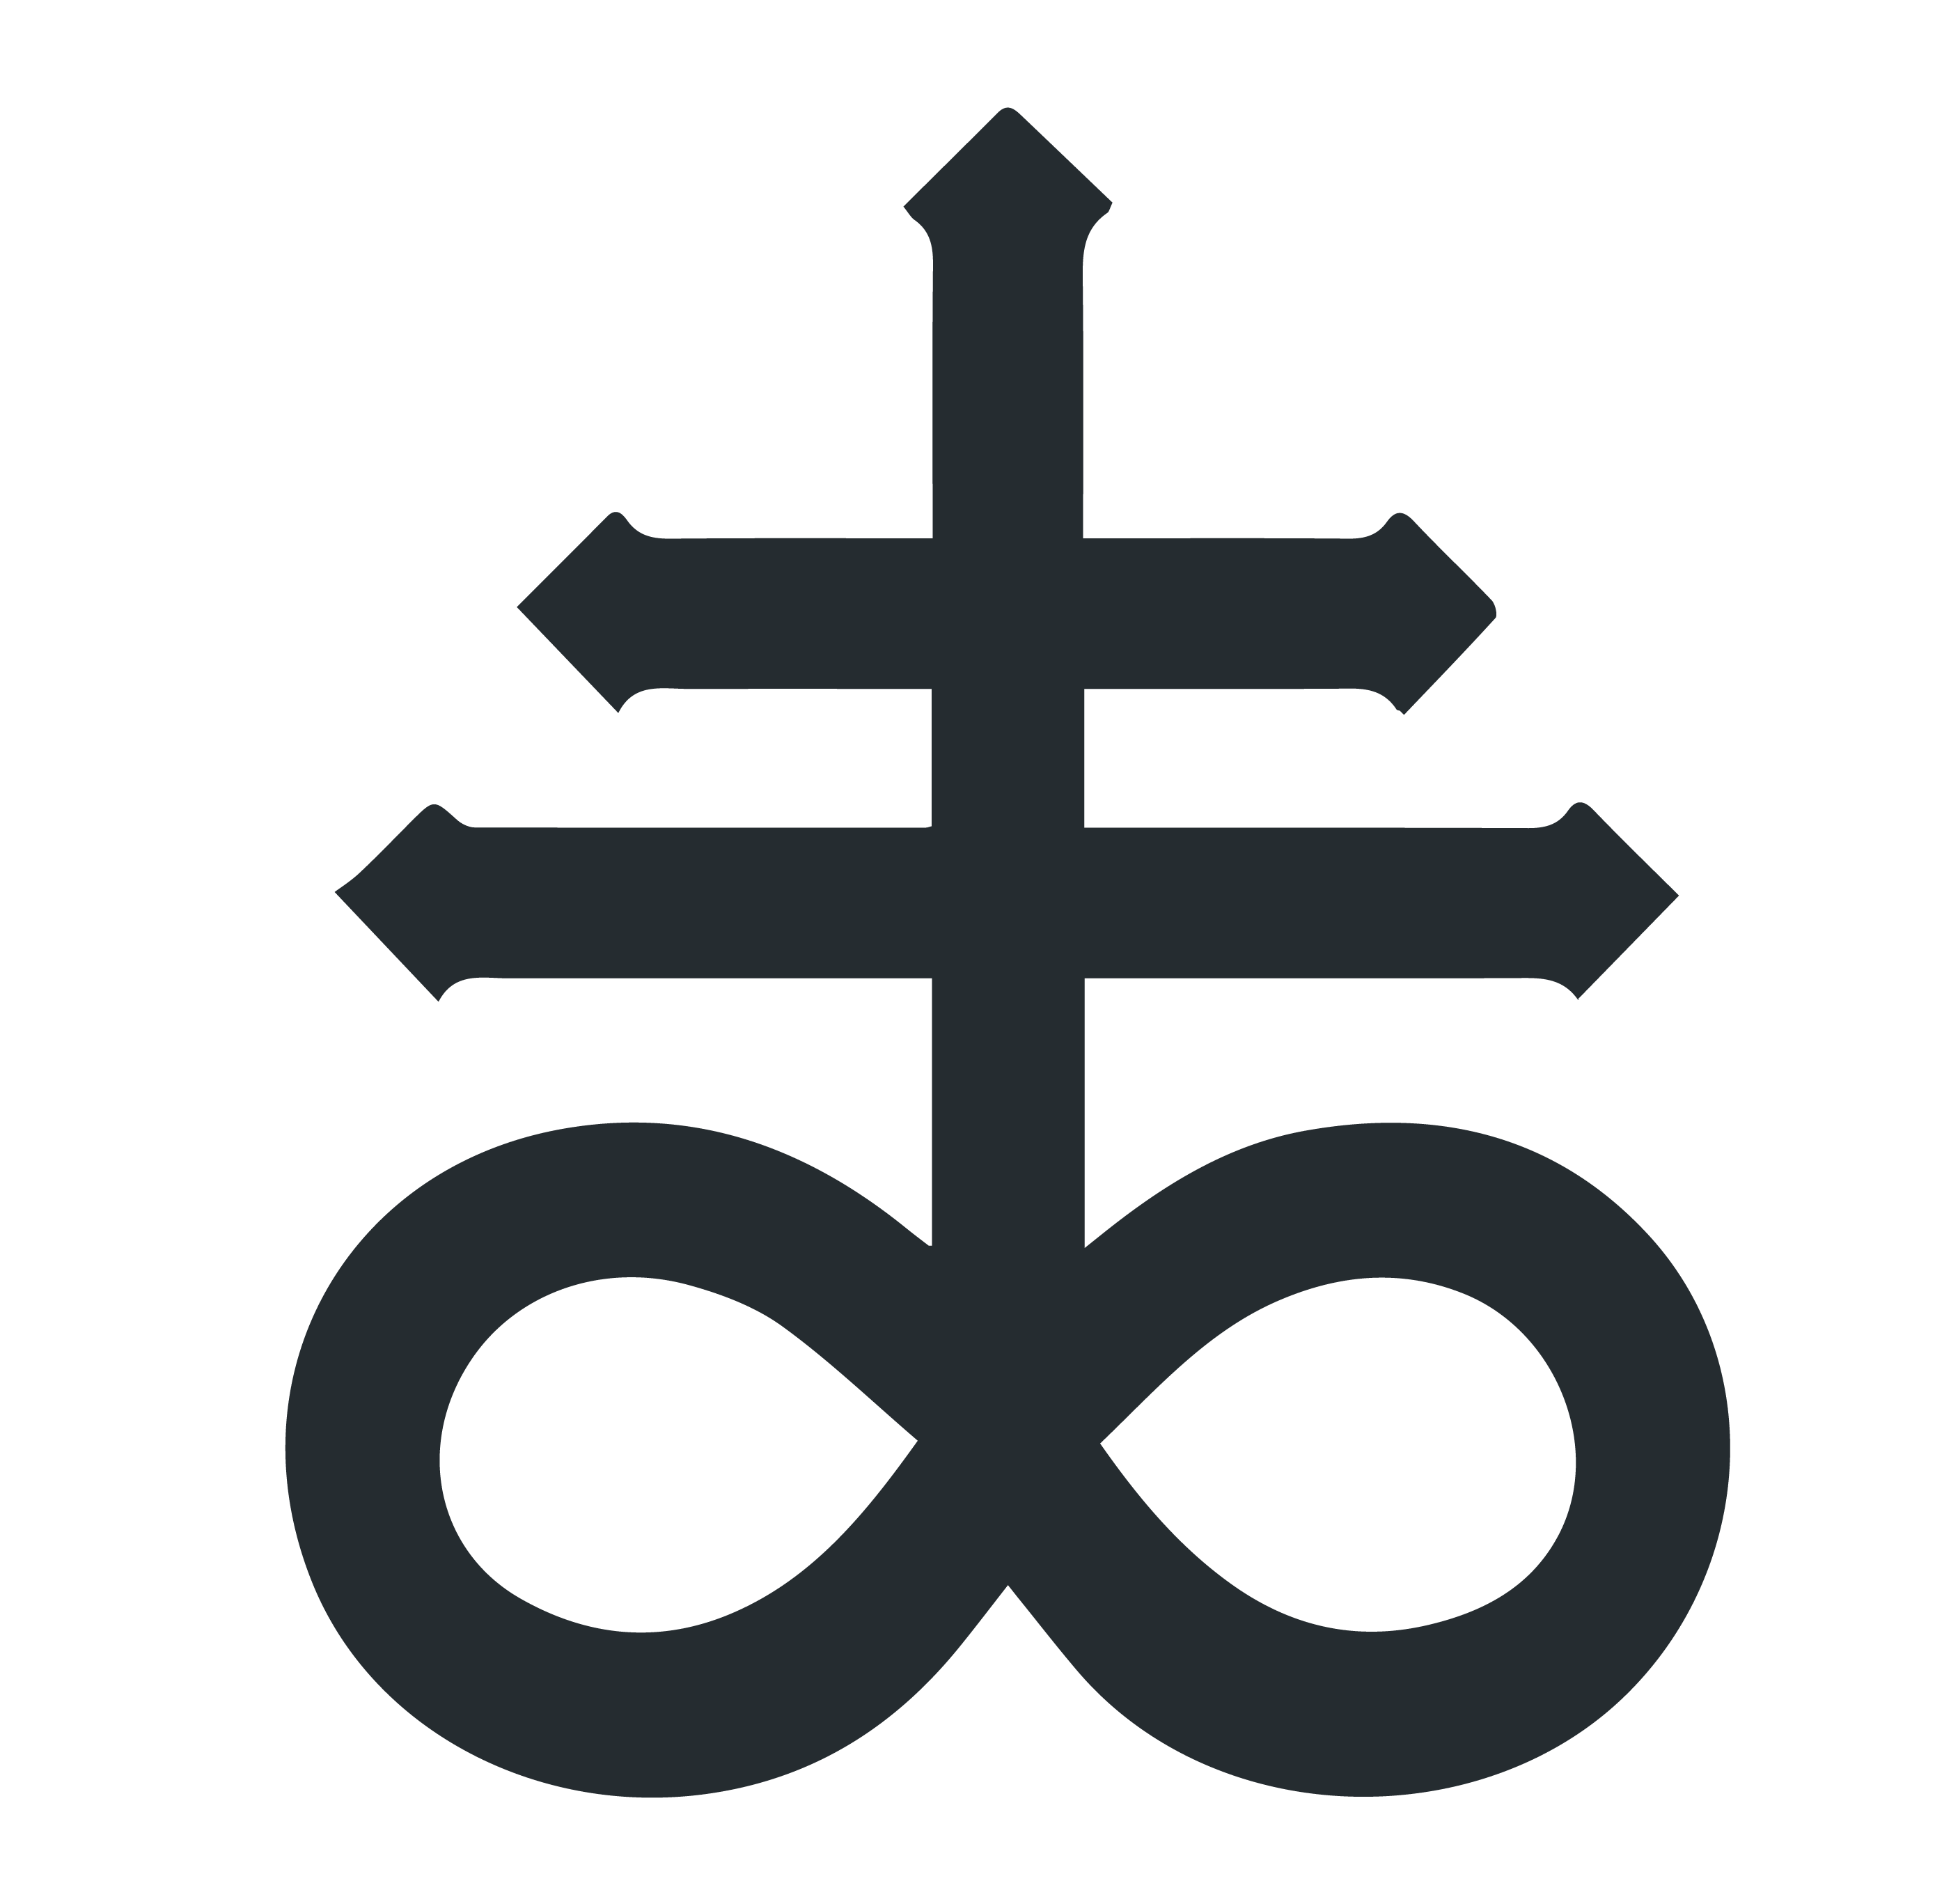 Leviathan-Cross-Satans-Cross-Symbol-and-Its-Meaning